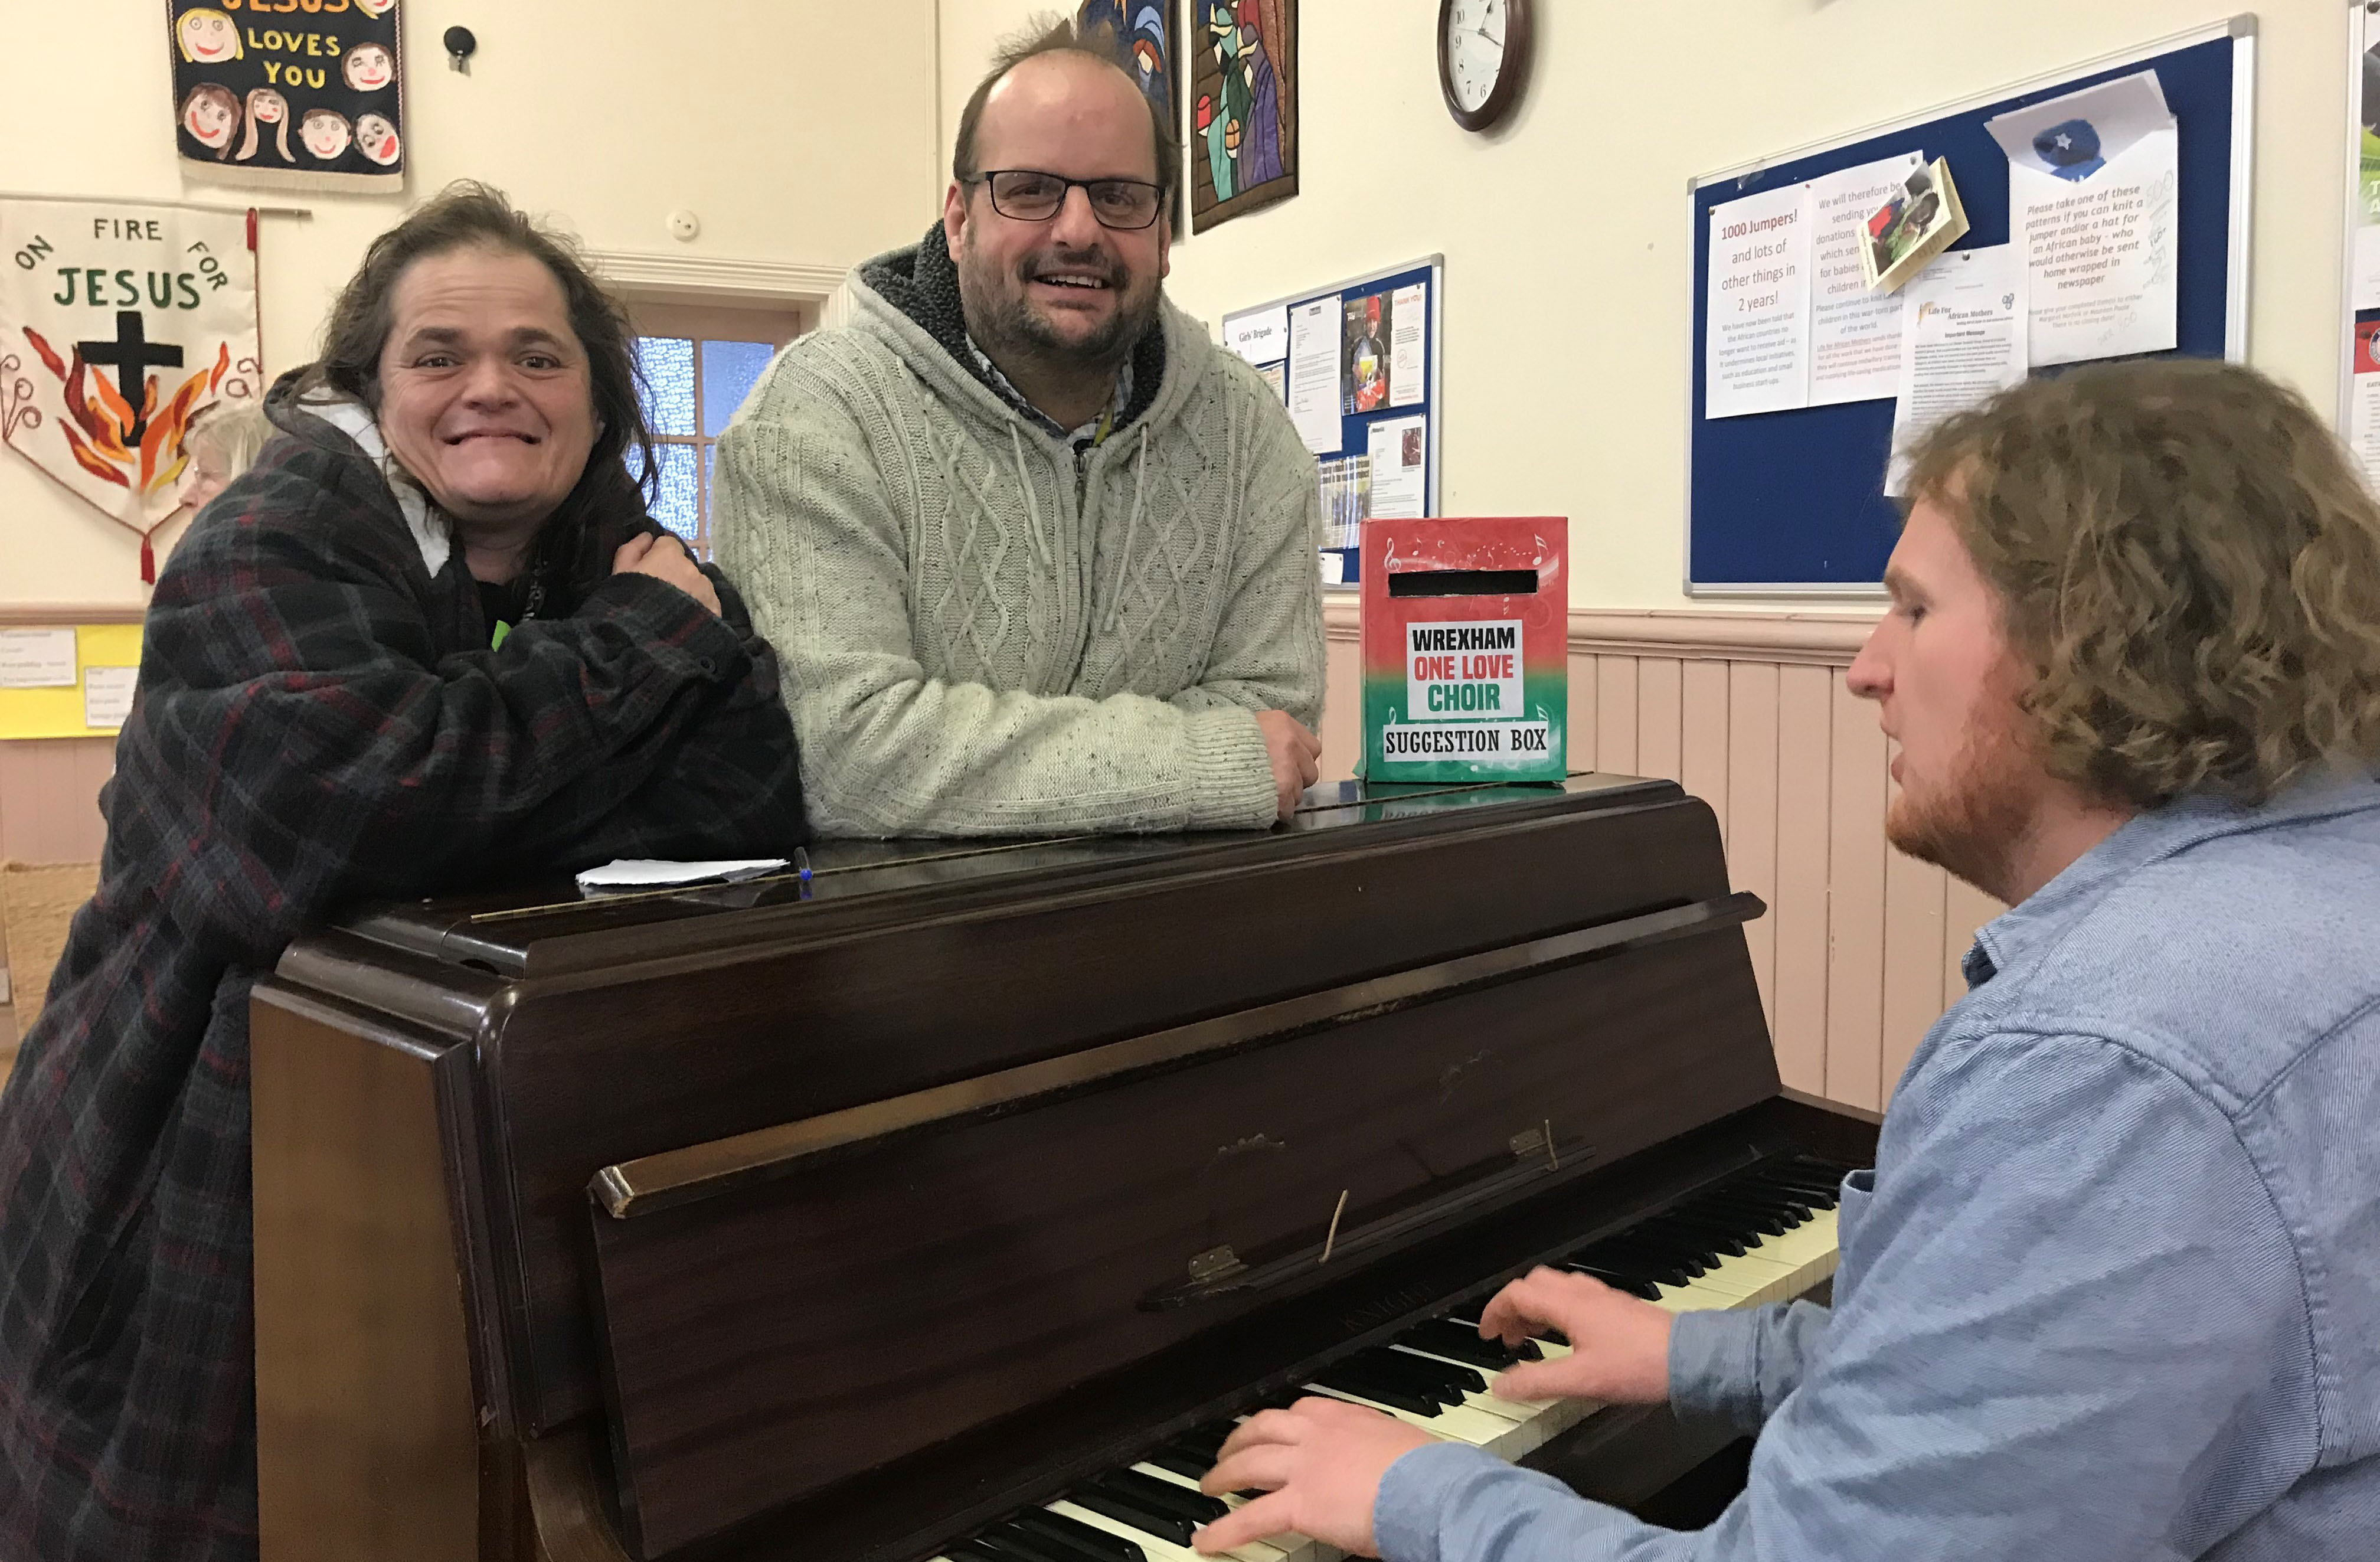 Wrexham choir sings out for recovery